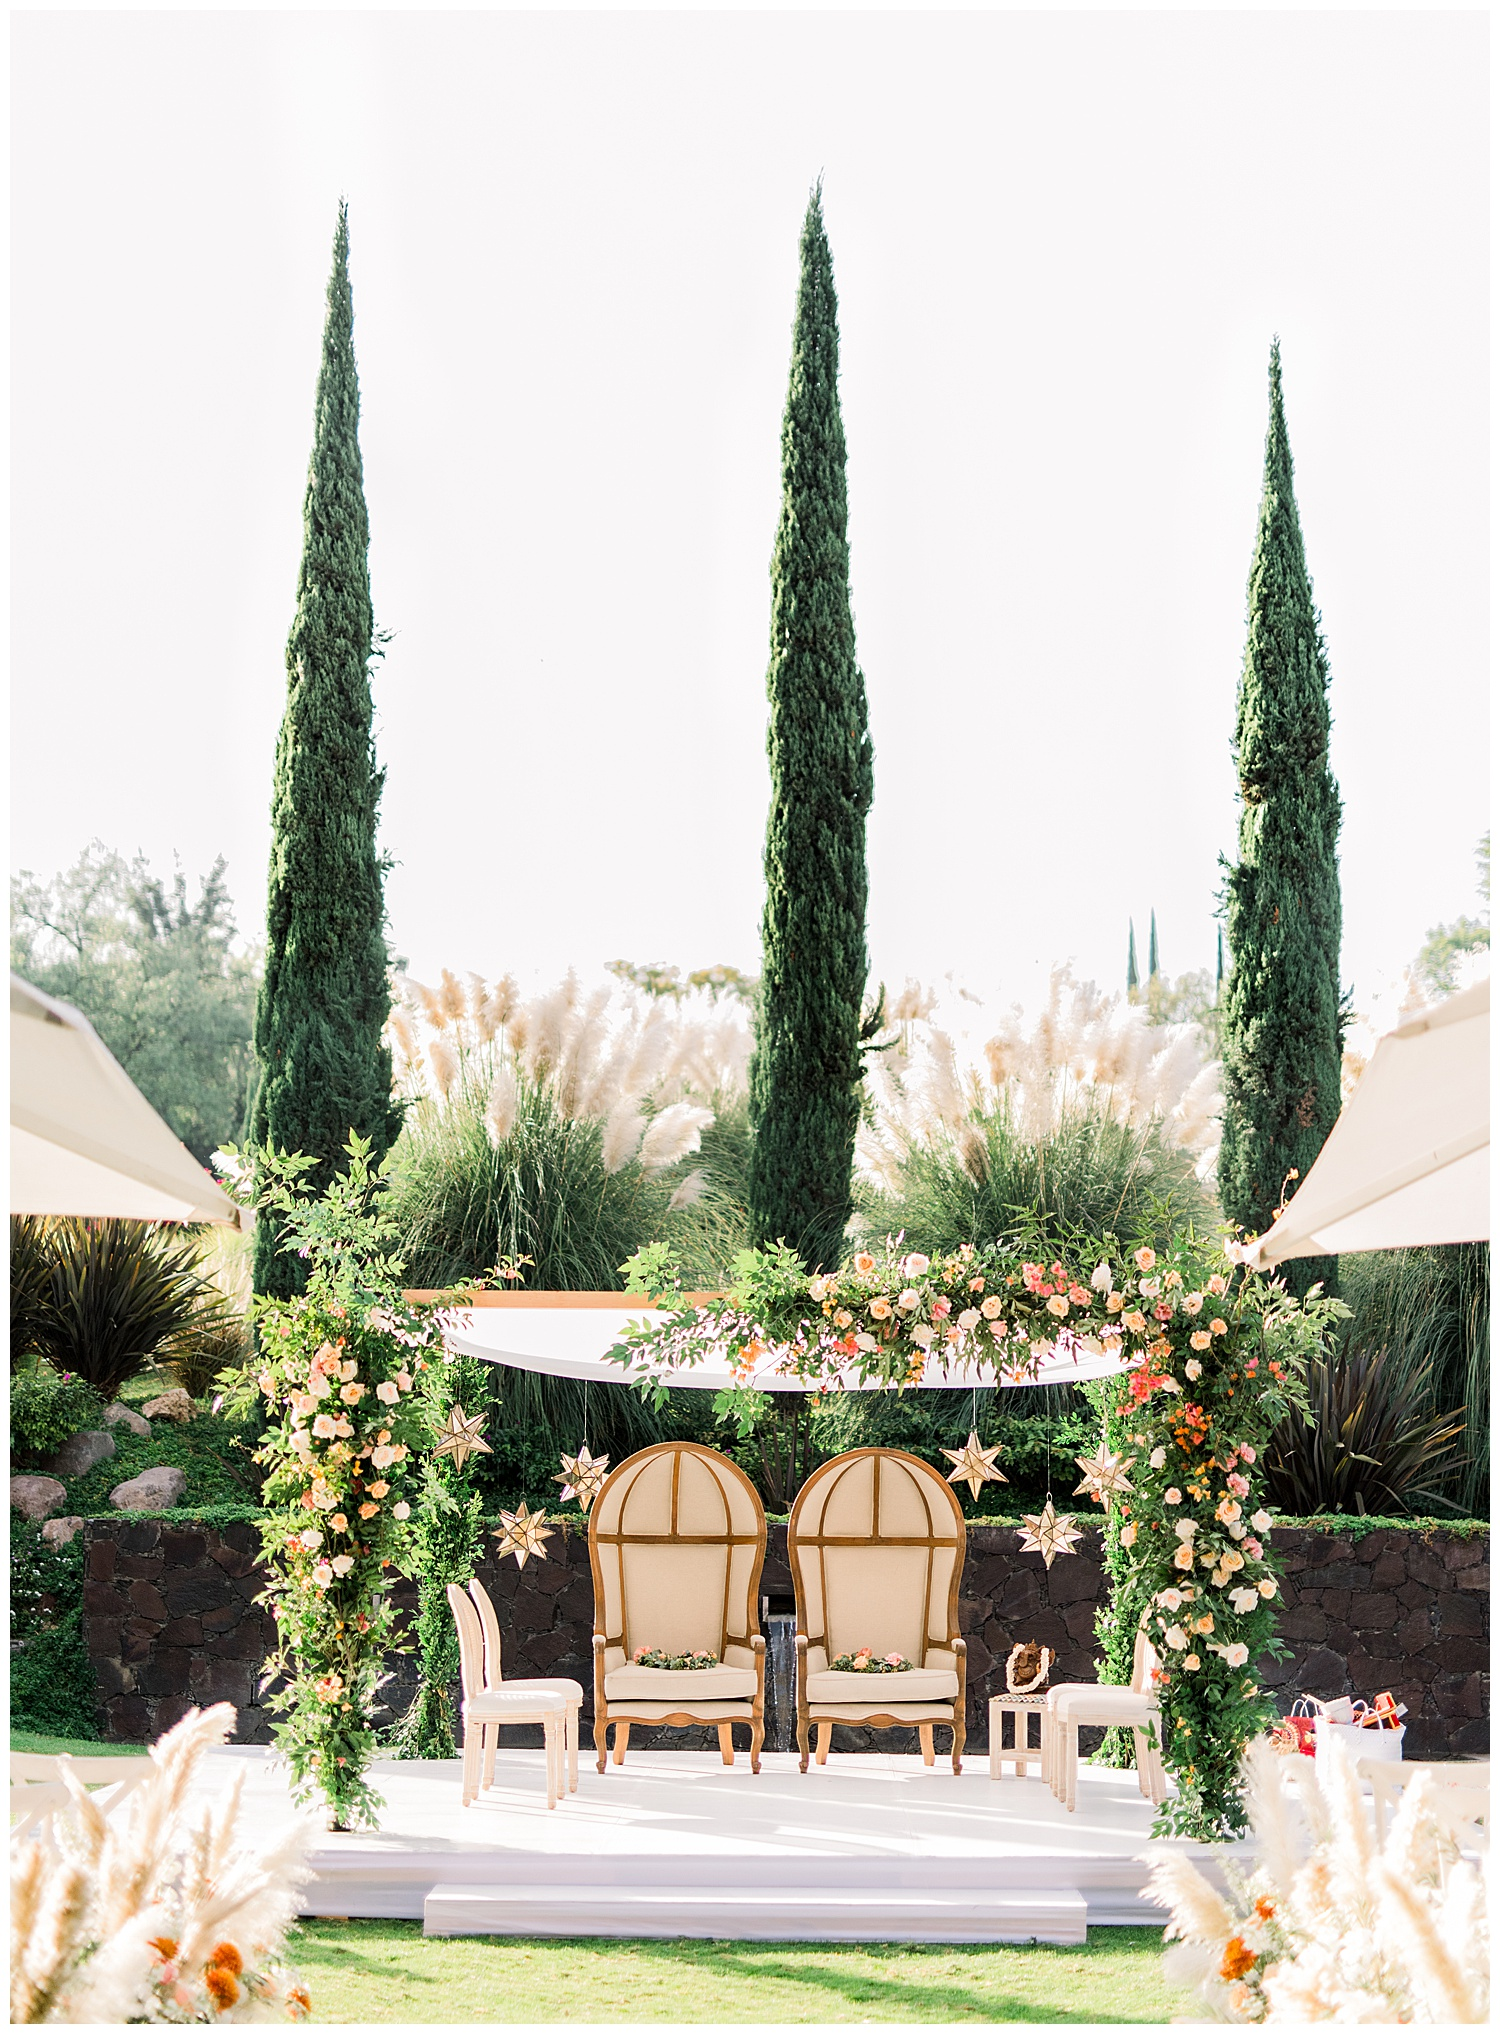 Janine_Licare_Photography_San_Francisco_Wedding_Photographer_Carneros_Tyge_Williams_Sonoma_Napa_0106.jpg